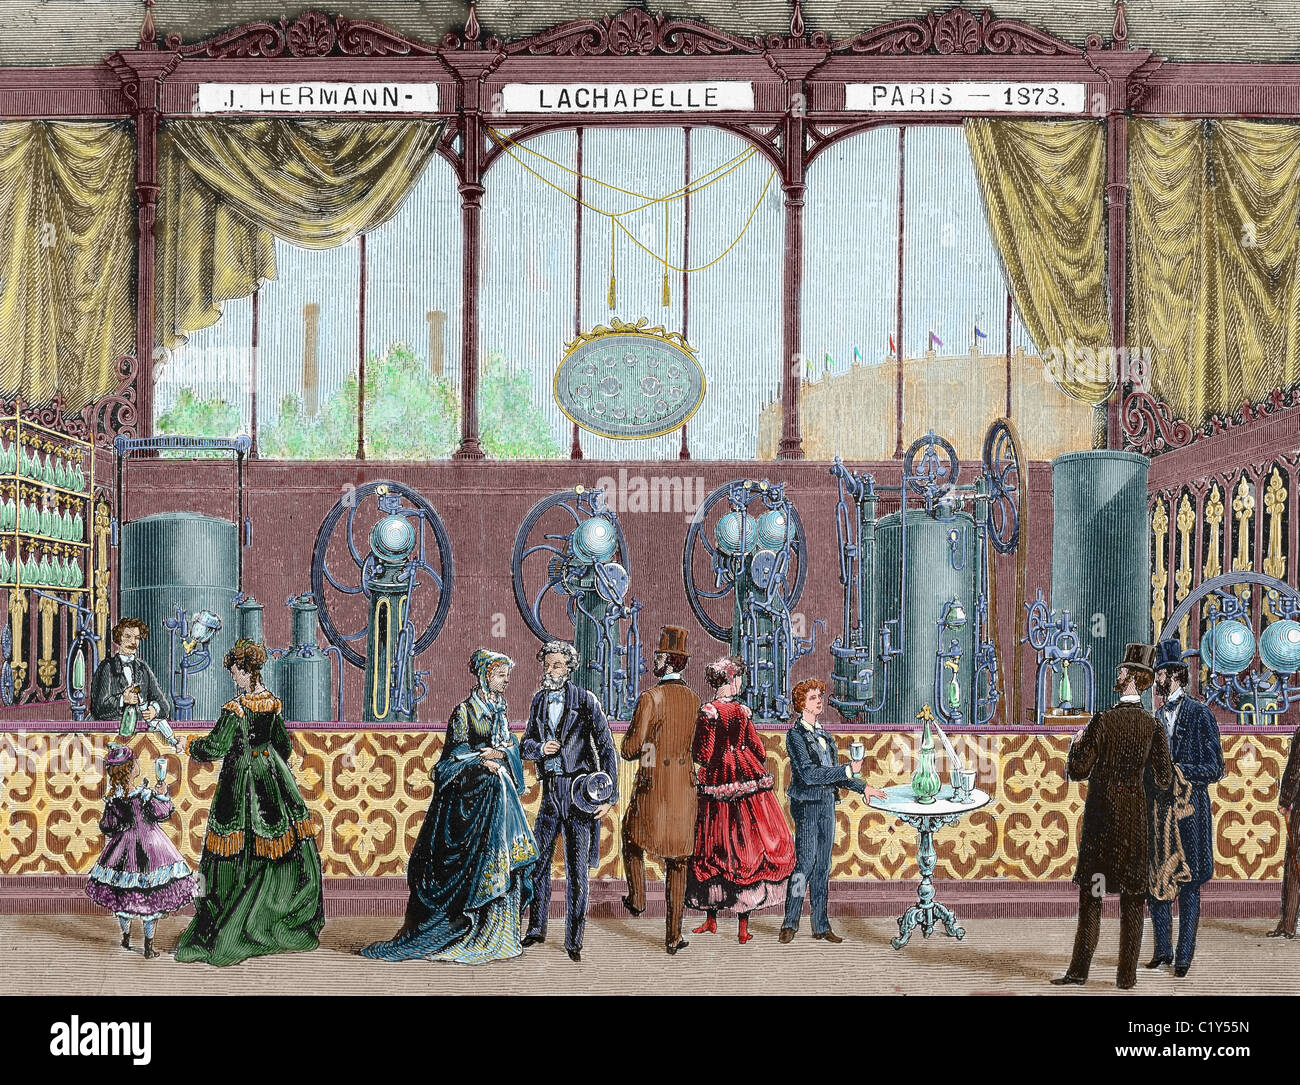 Paris Universal Exhibition (1878). Installation by J. Hermann Lachapelle, Continuous equipment maker for the production Stock Photo